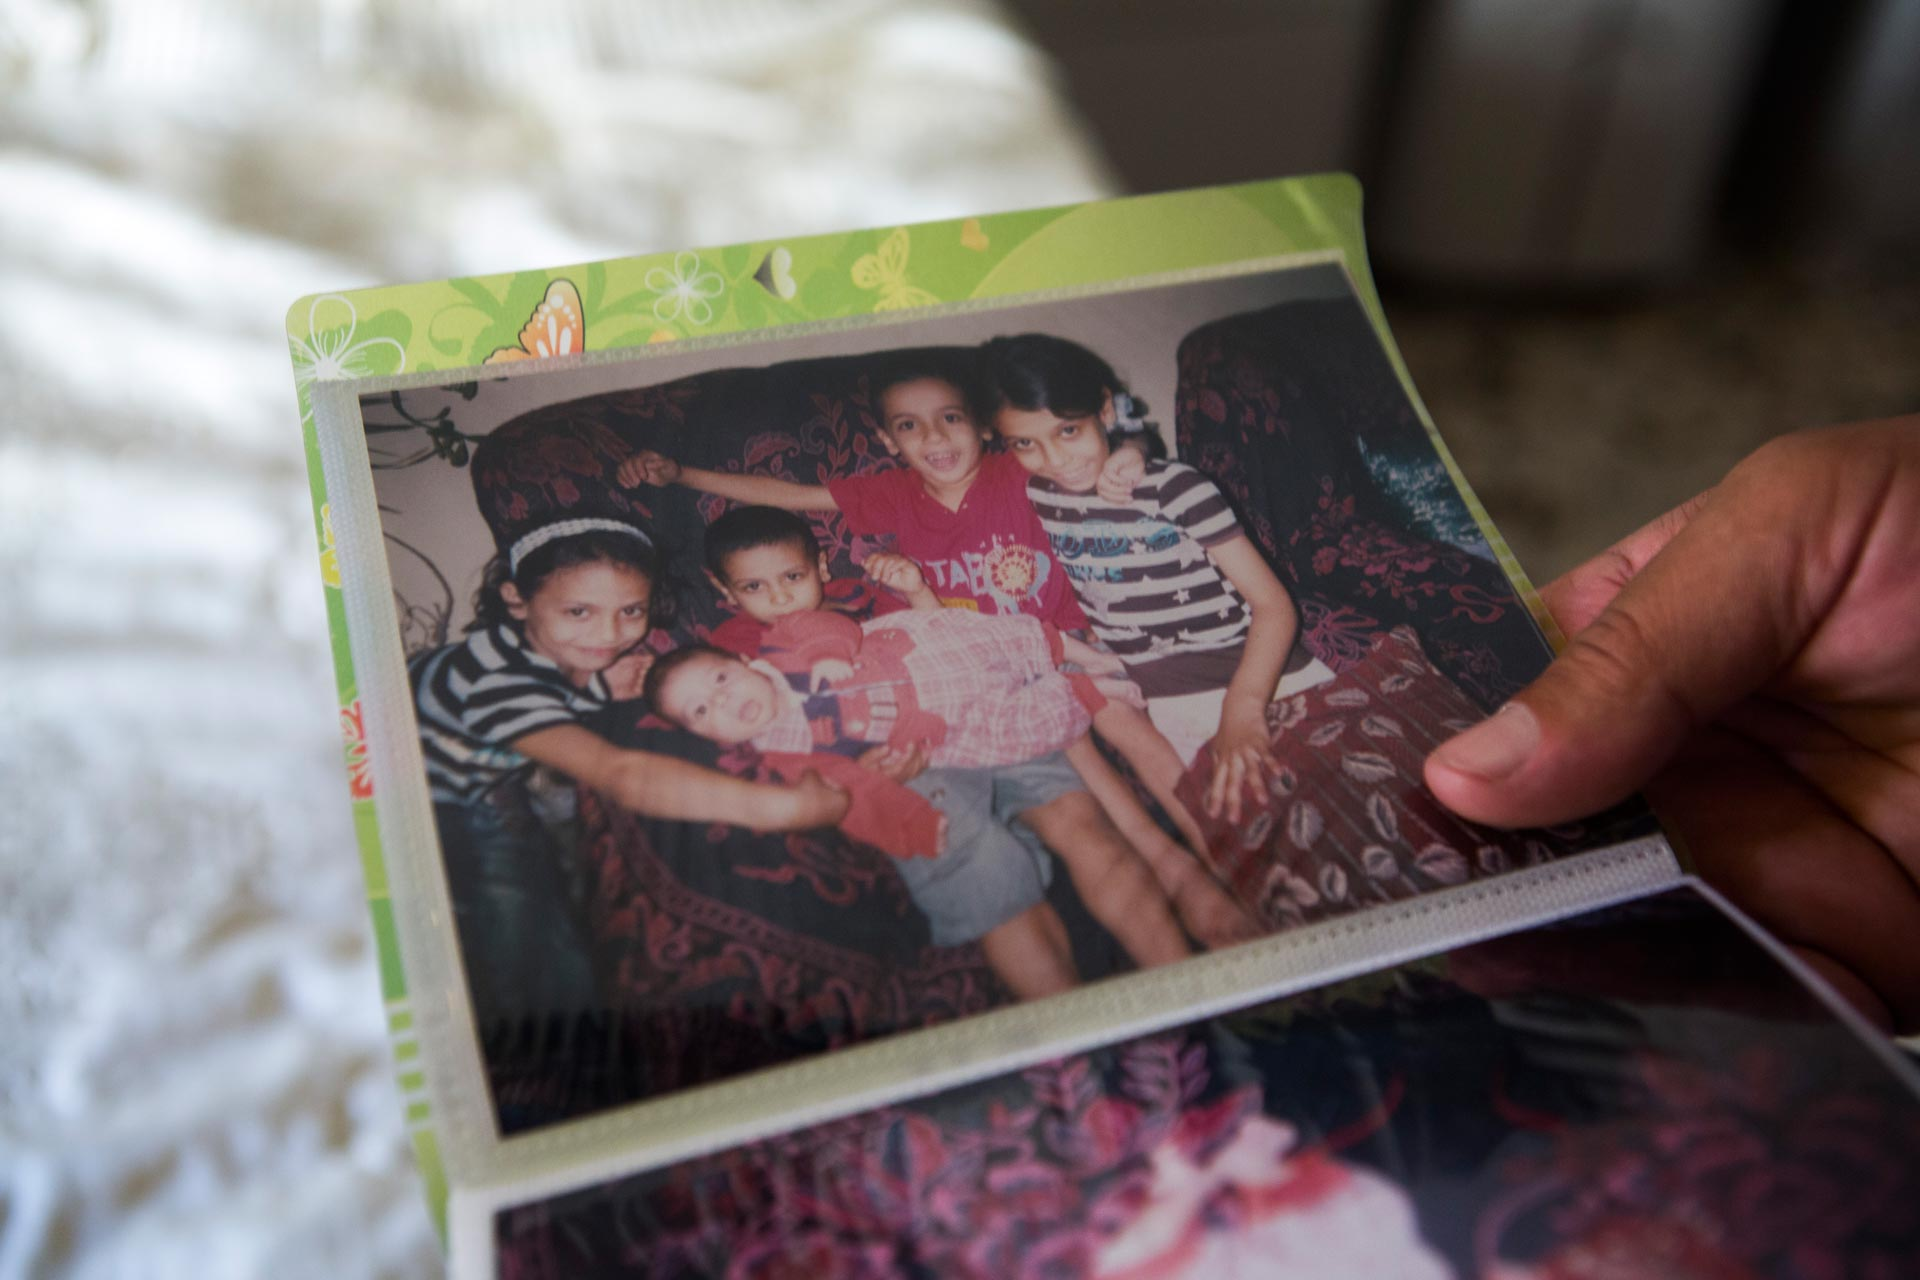 They had five little kids: Yassin, Sawsan, Rim, Elias and Yasser.